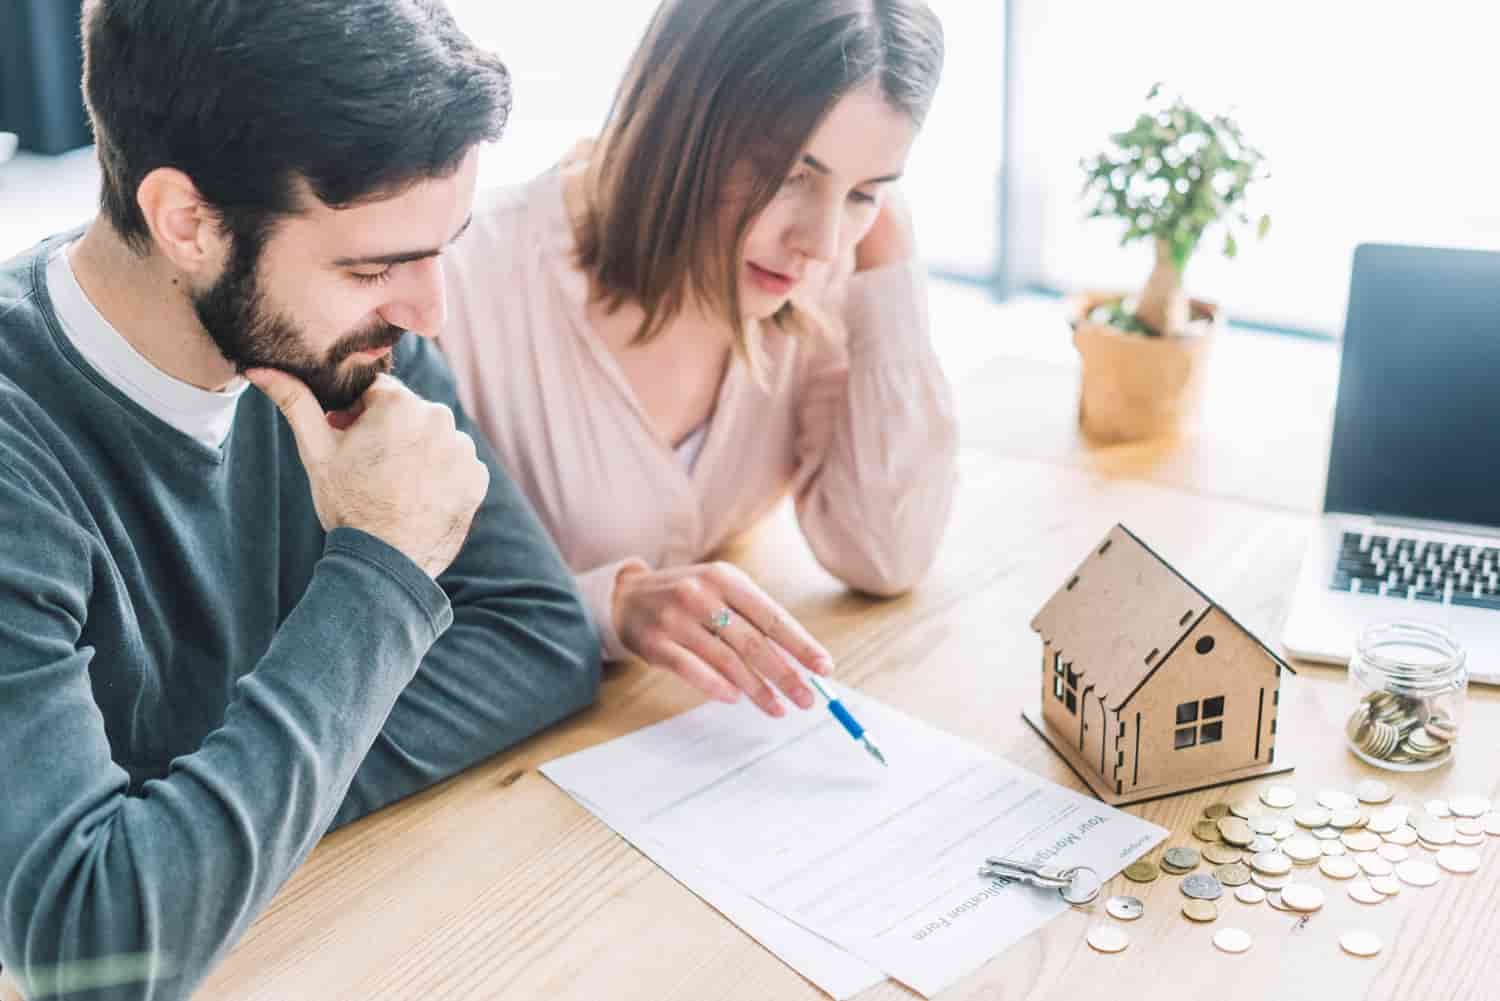 Renovate Your Home Easily With Personal Loan For Home Renovation